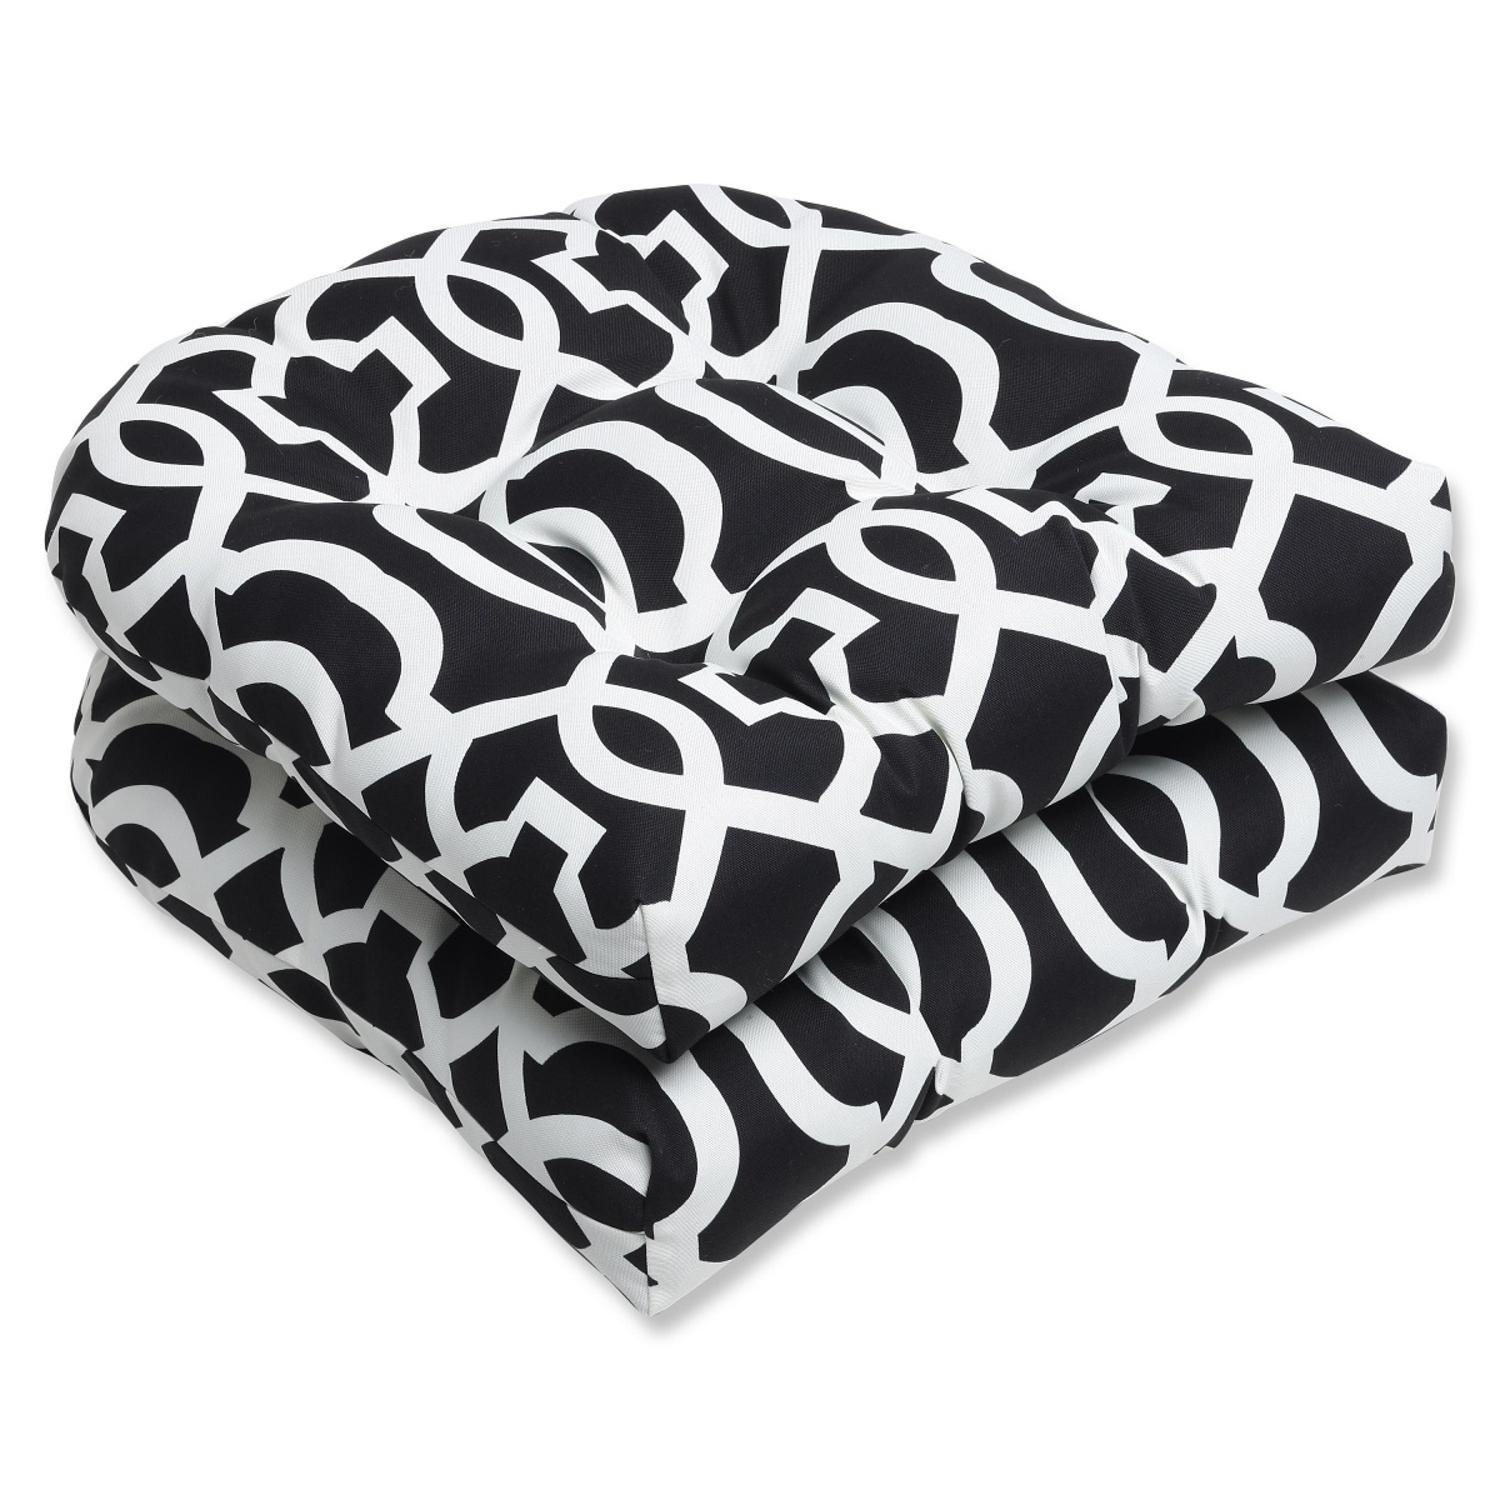 Set of 2 Labirinto Geometrico Black and White Outdoor Patio Tufted Wicker Chair Cushions 19""